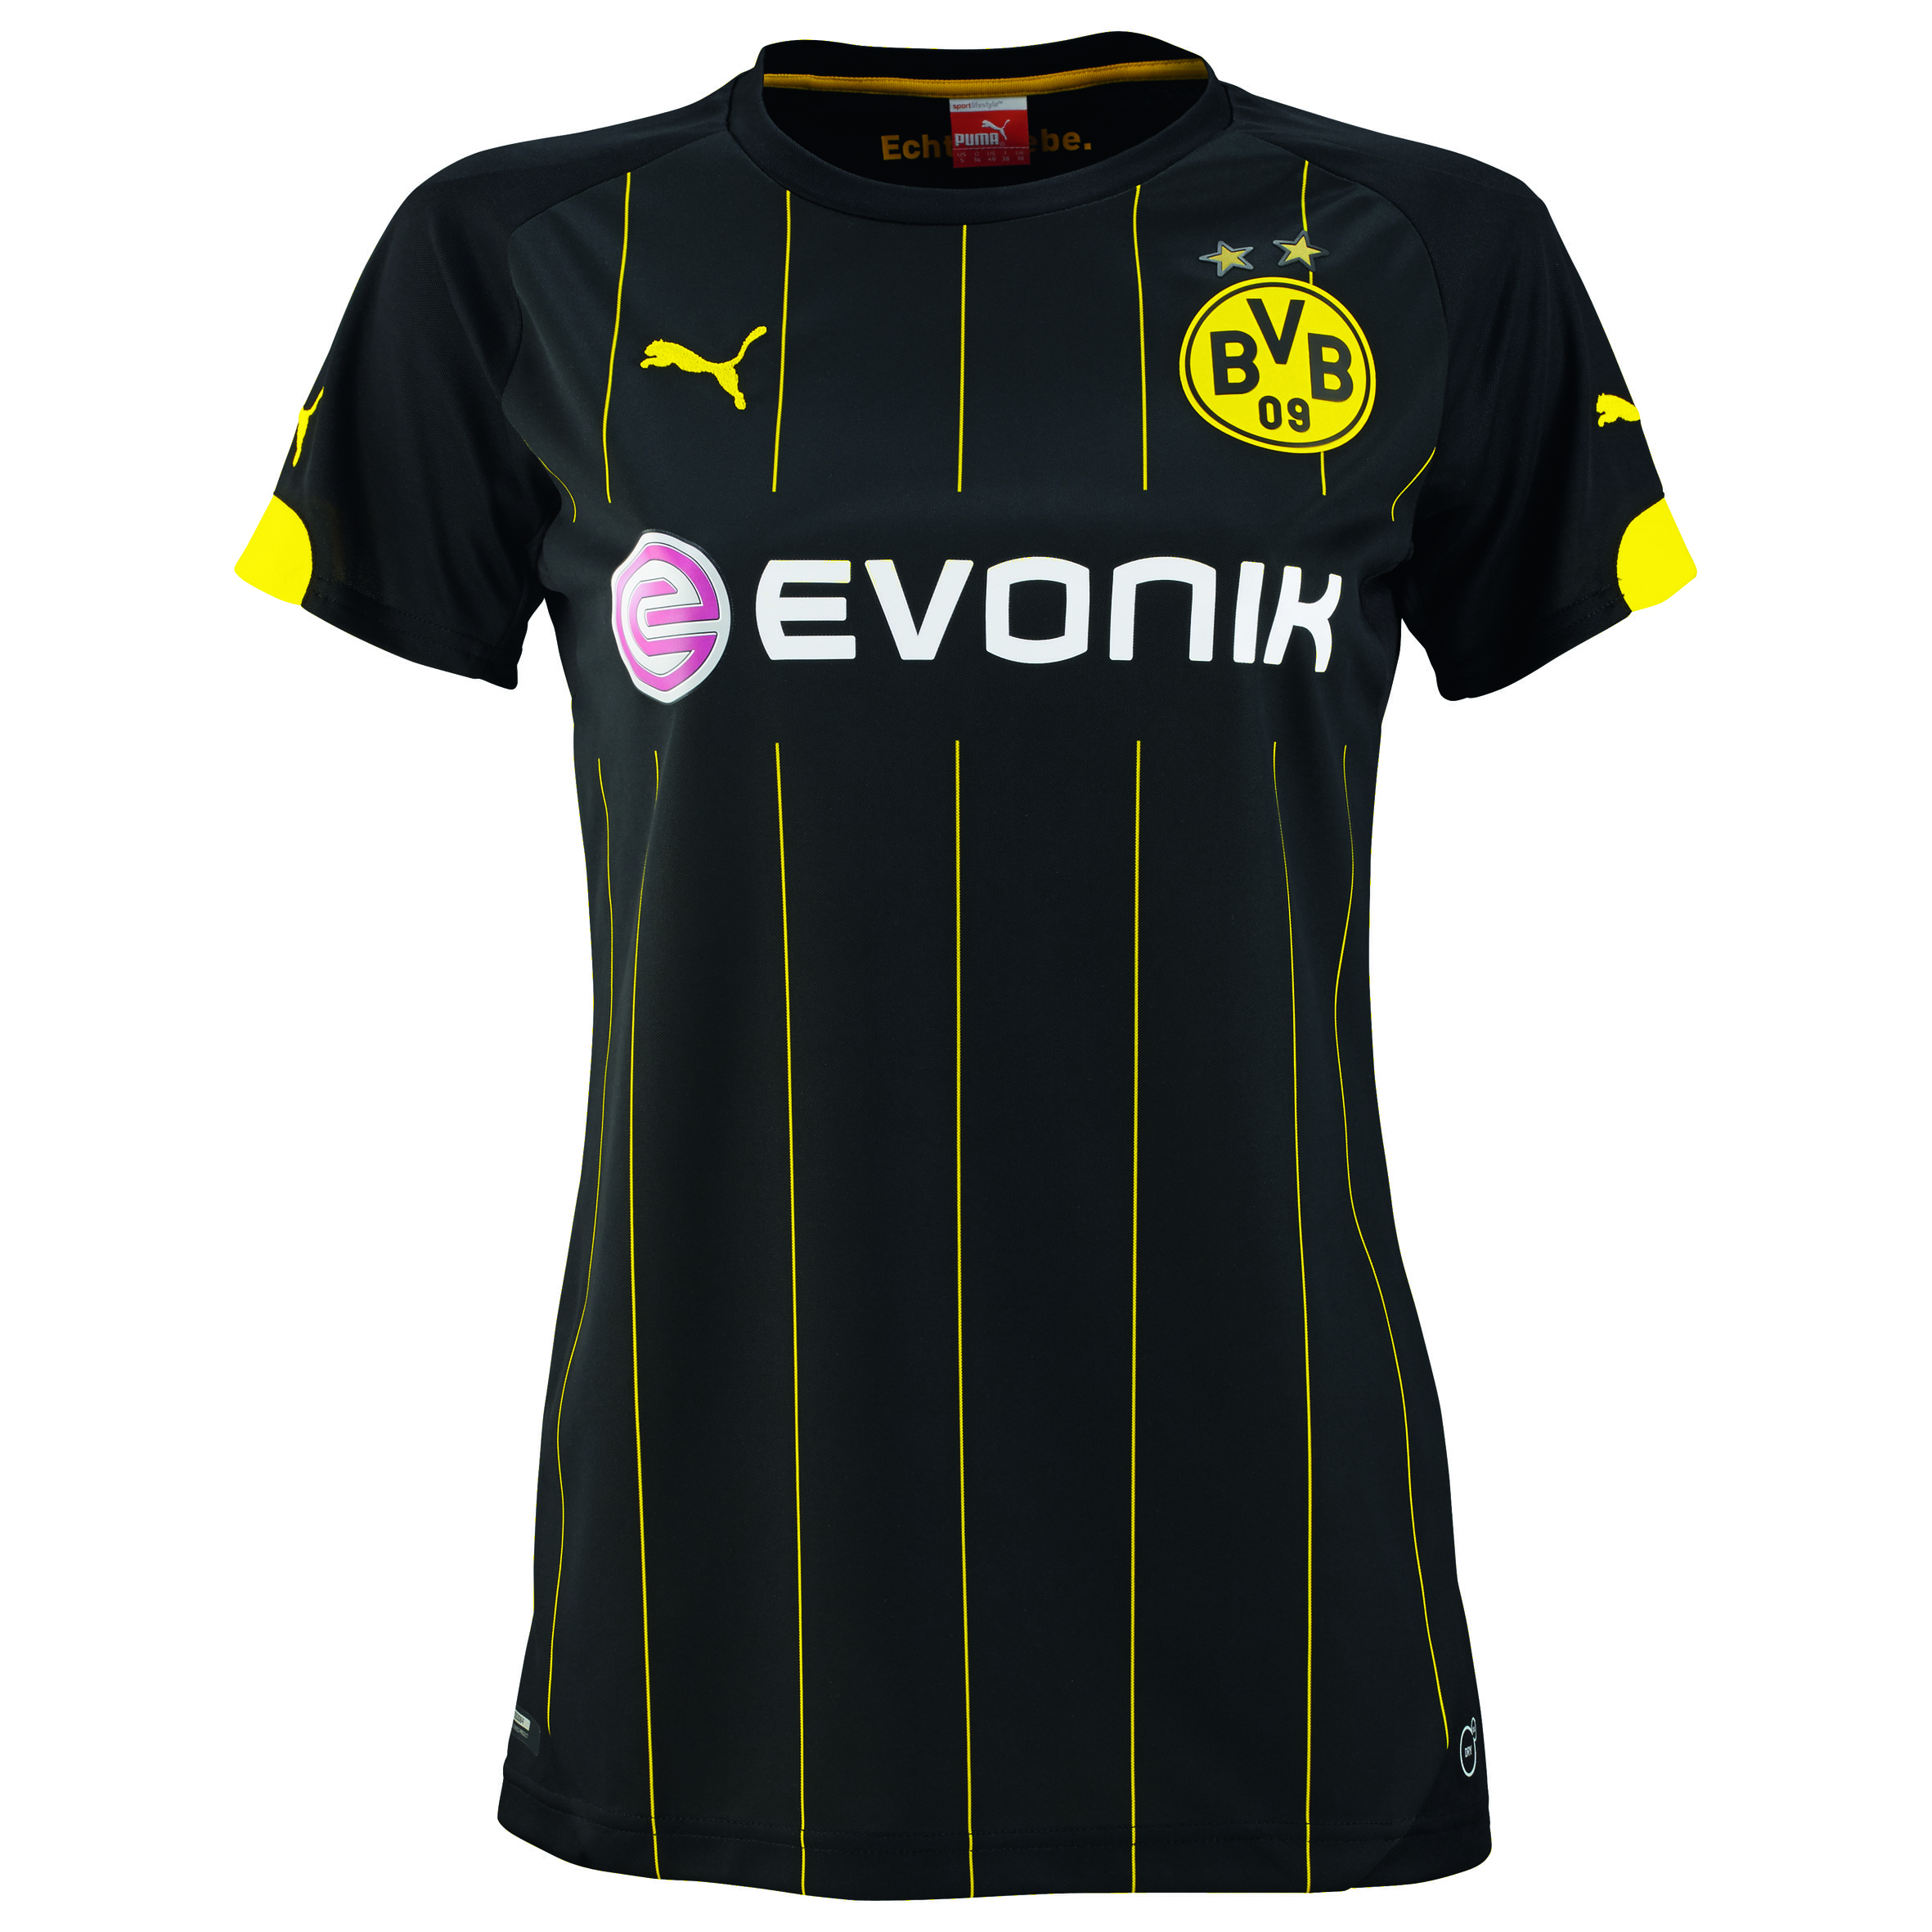 BVB Away Shirt 2014/15 - Womens